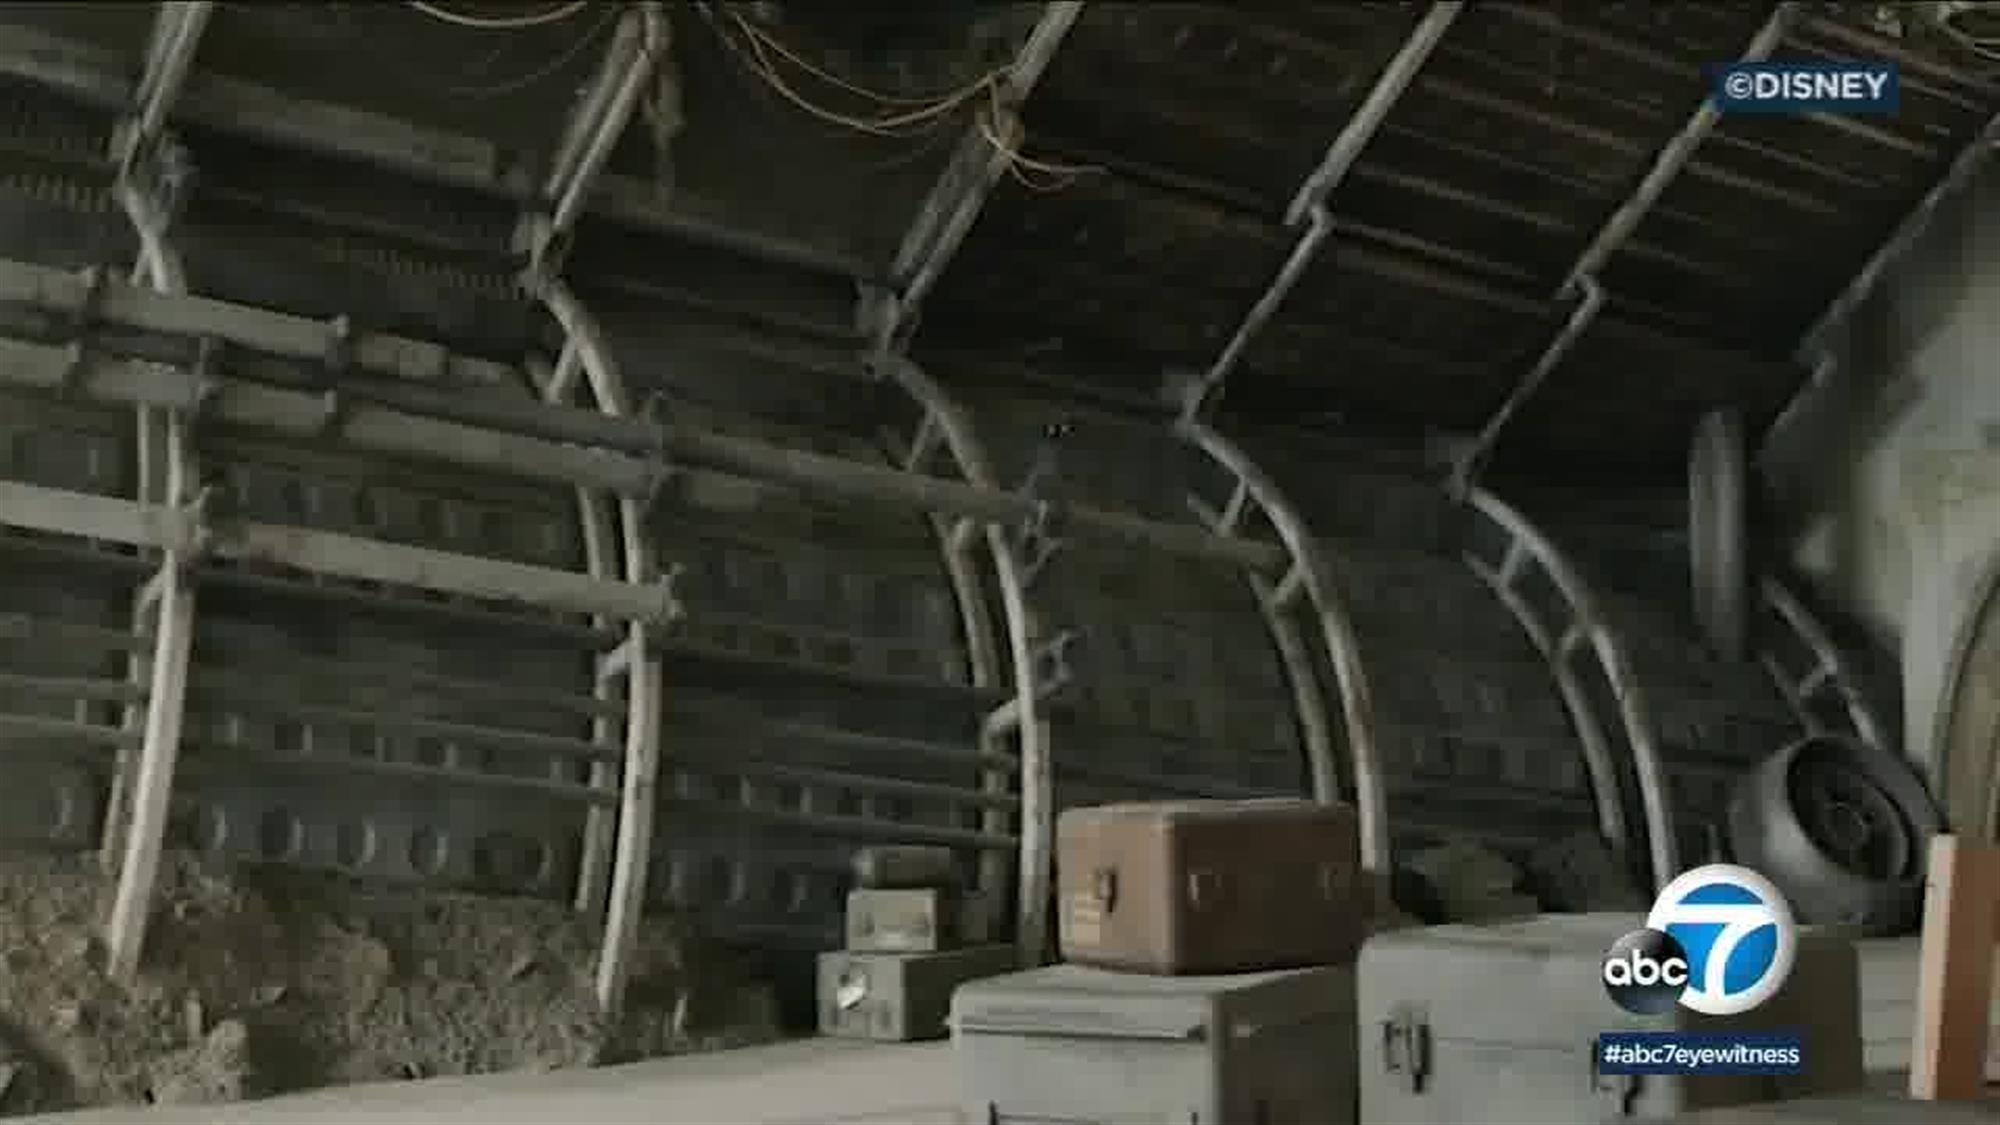 Cargo crates and other discarded engine parts help contribute to the lived-in feeling that Star Wars is so famous for.